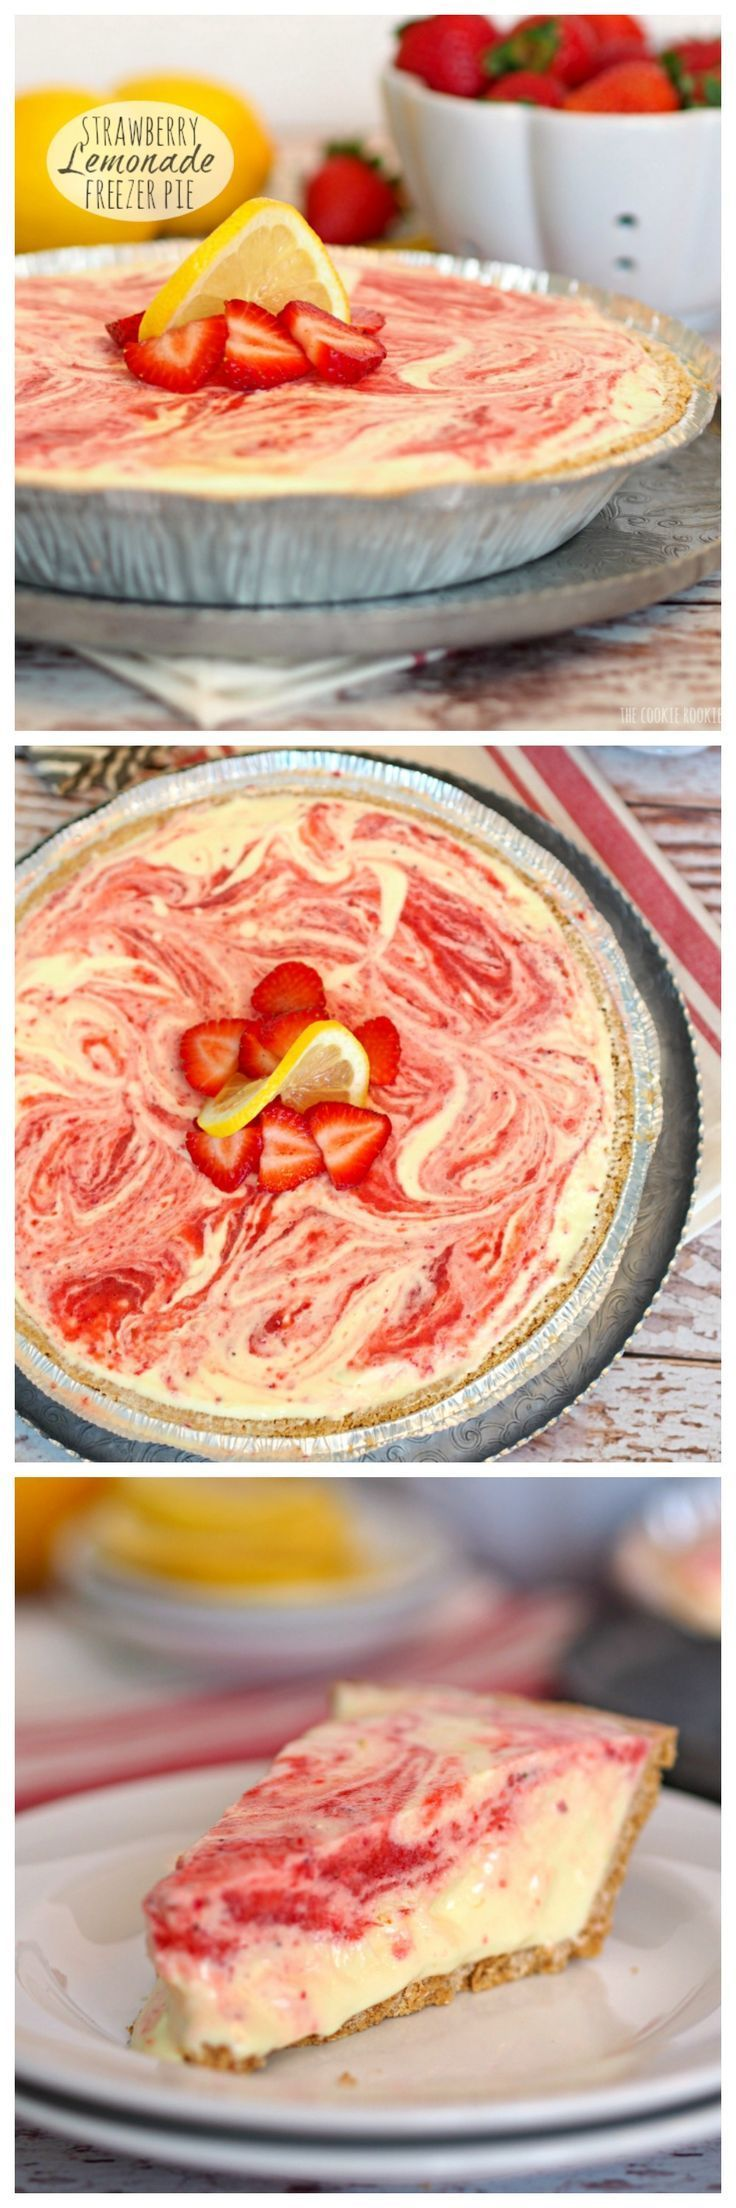 NO BAKE Strawberry Lemonade Freezer Pie! Easiest dessert you'll ever make.  My favorite! - The Cookie Rookie